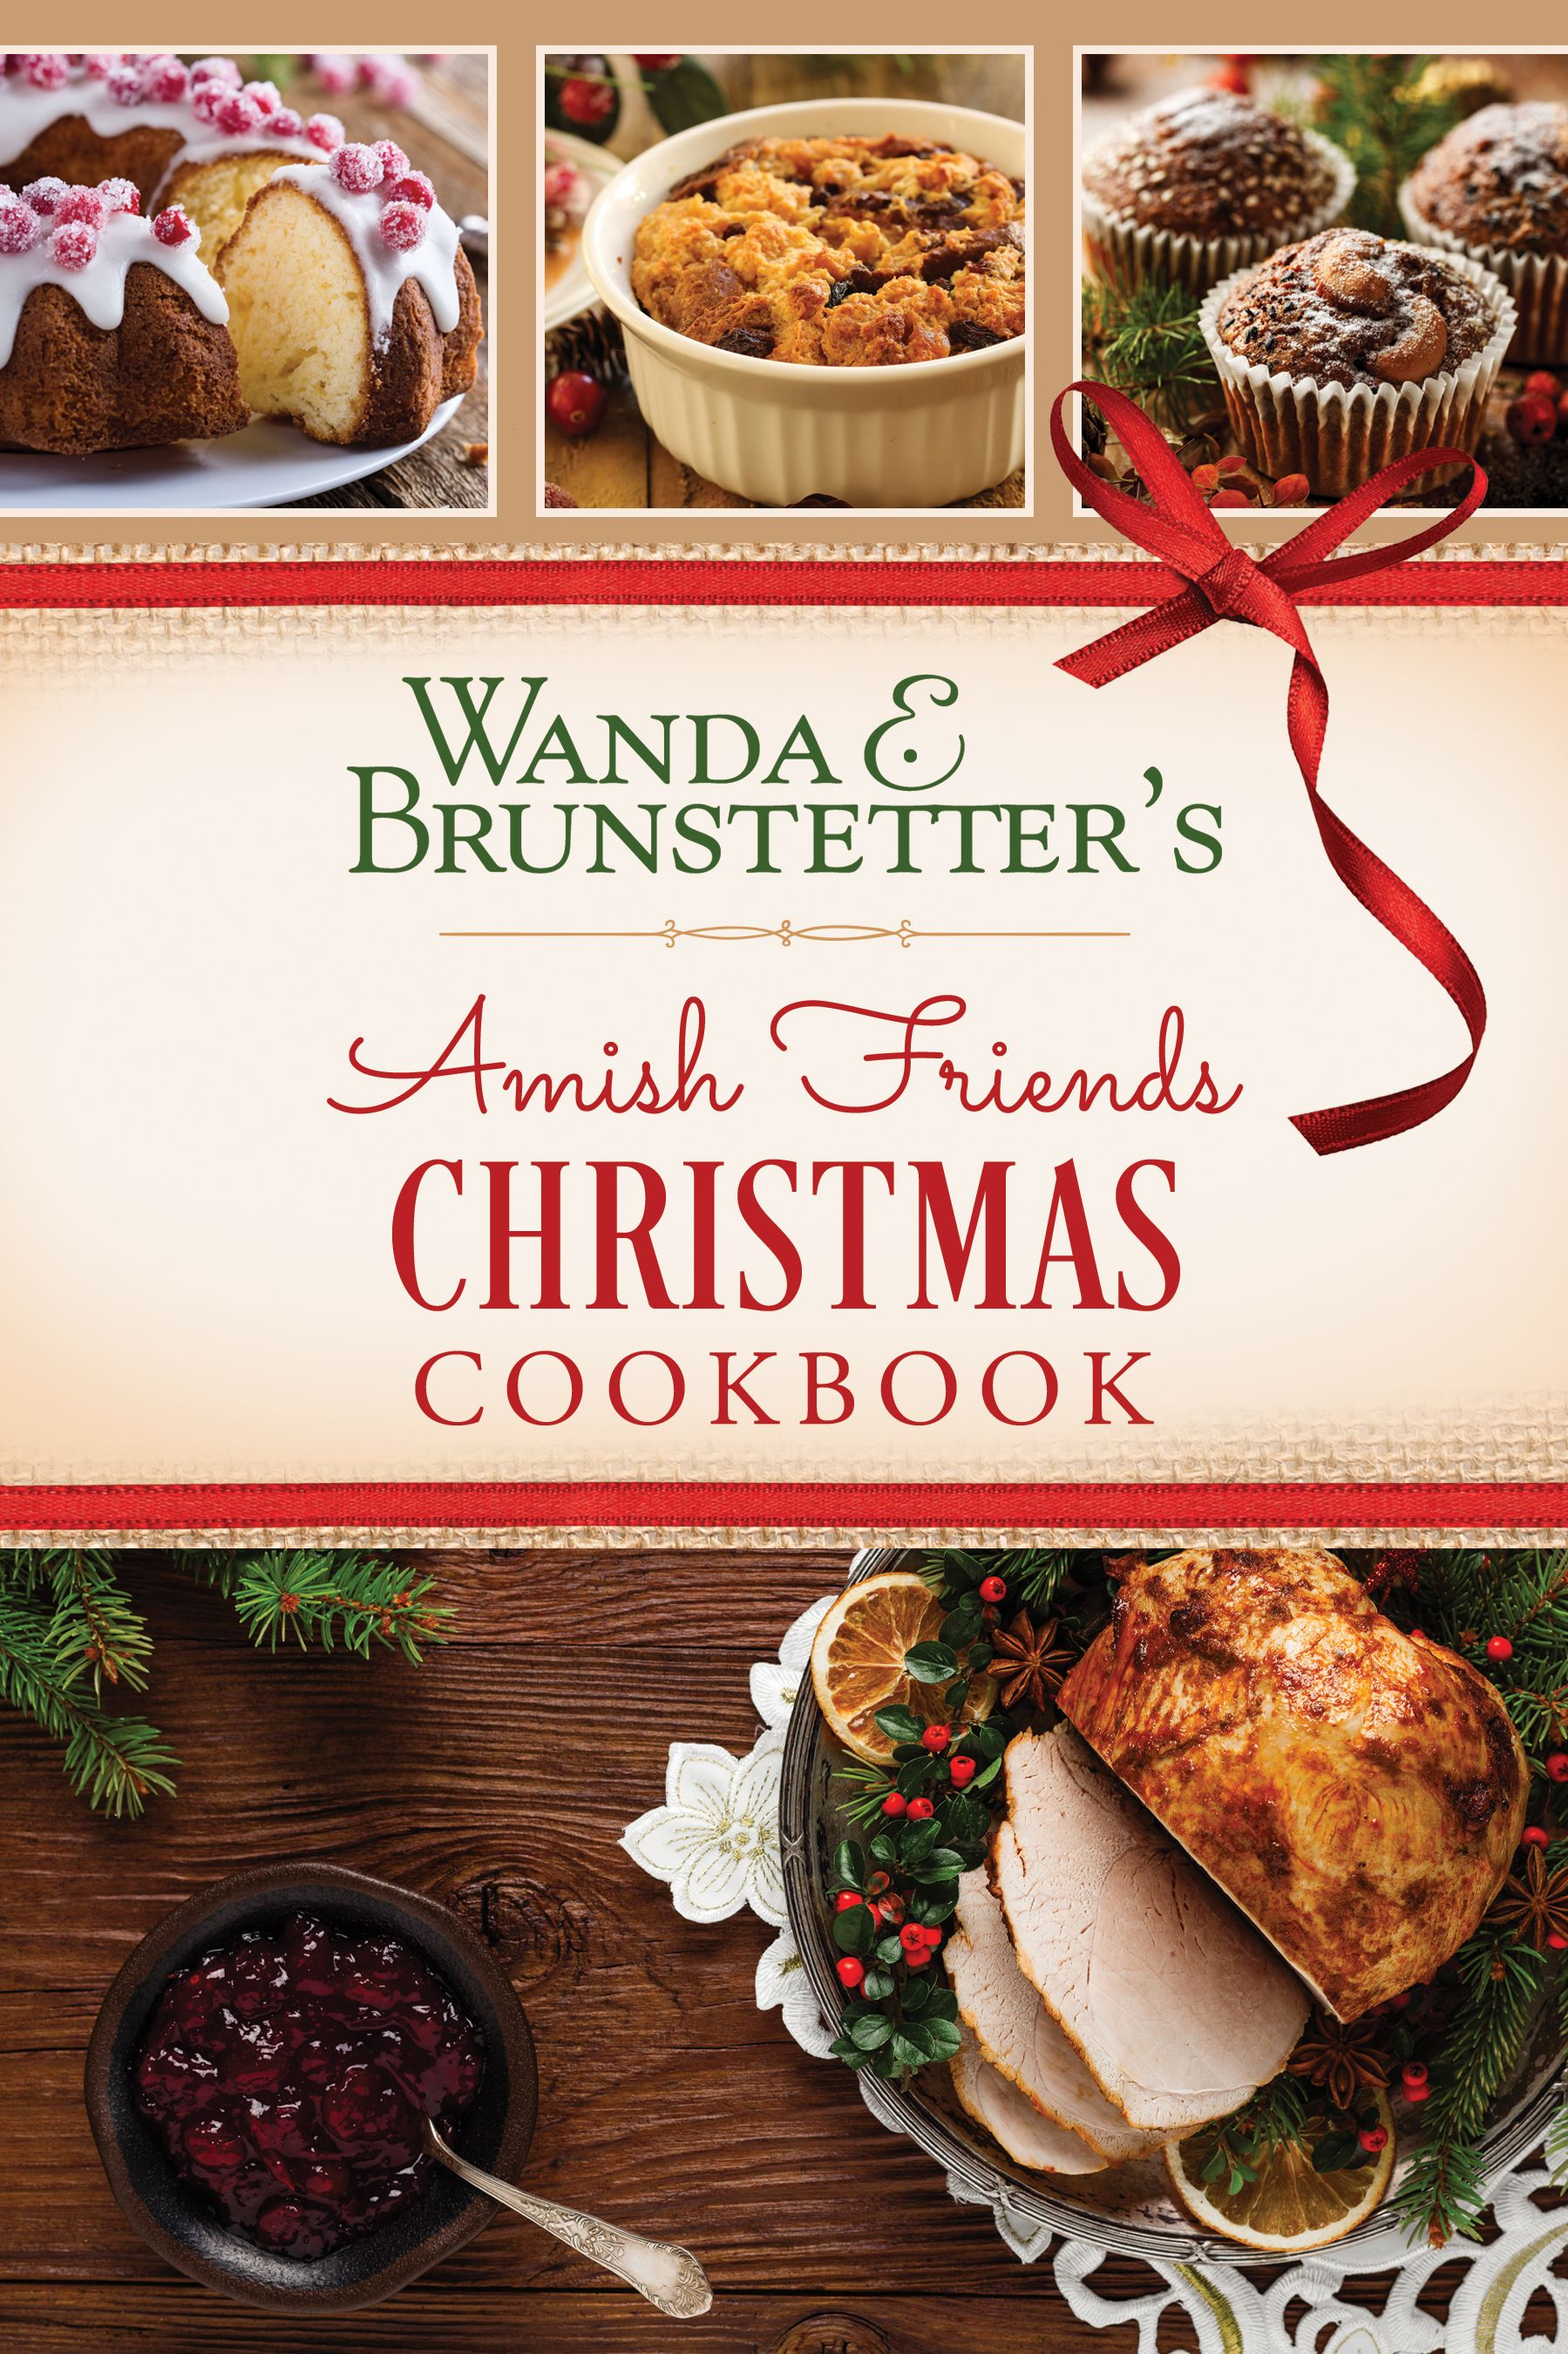 Christmas Recipes 2019 Christmas recipes shared by Amish friends. Published in Sept.2019